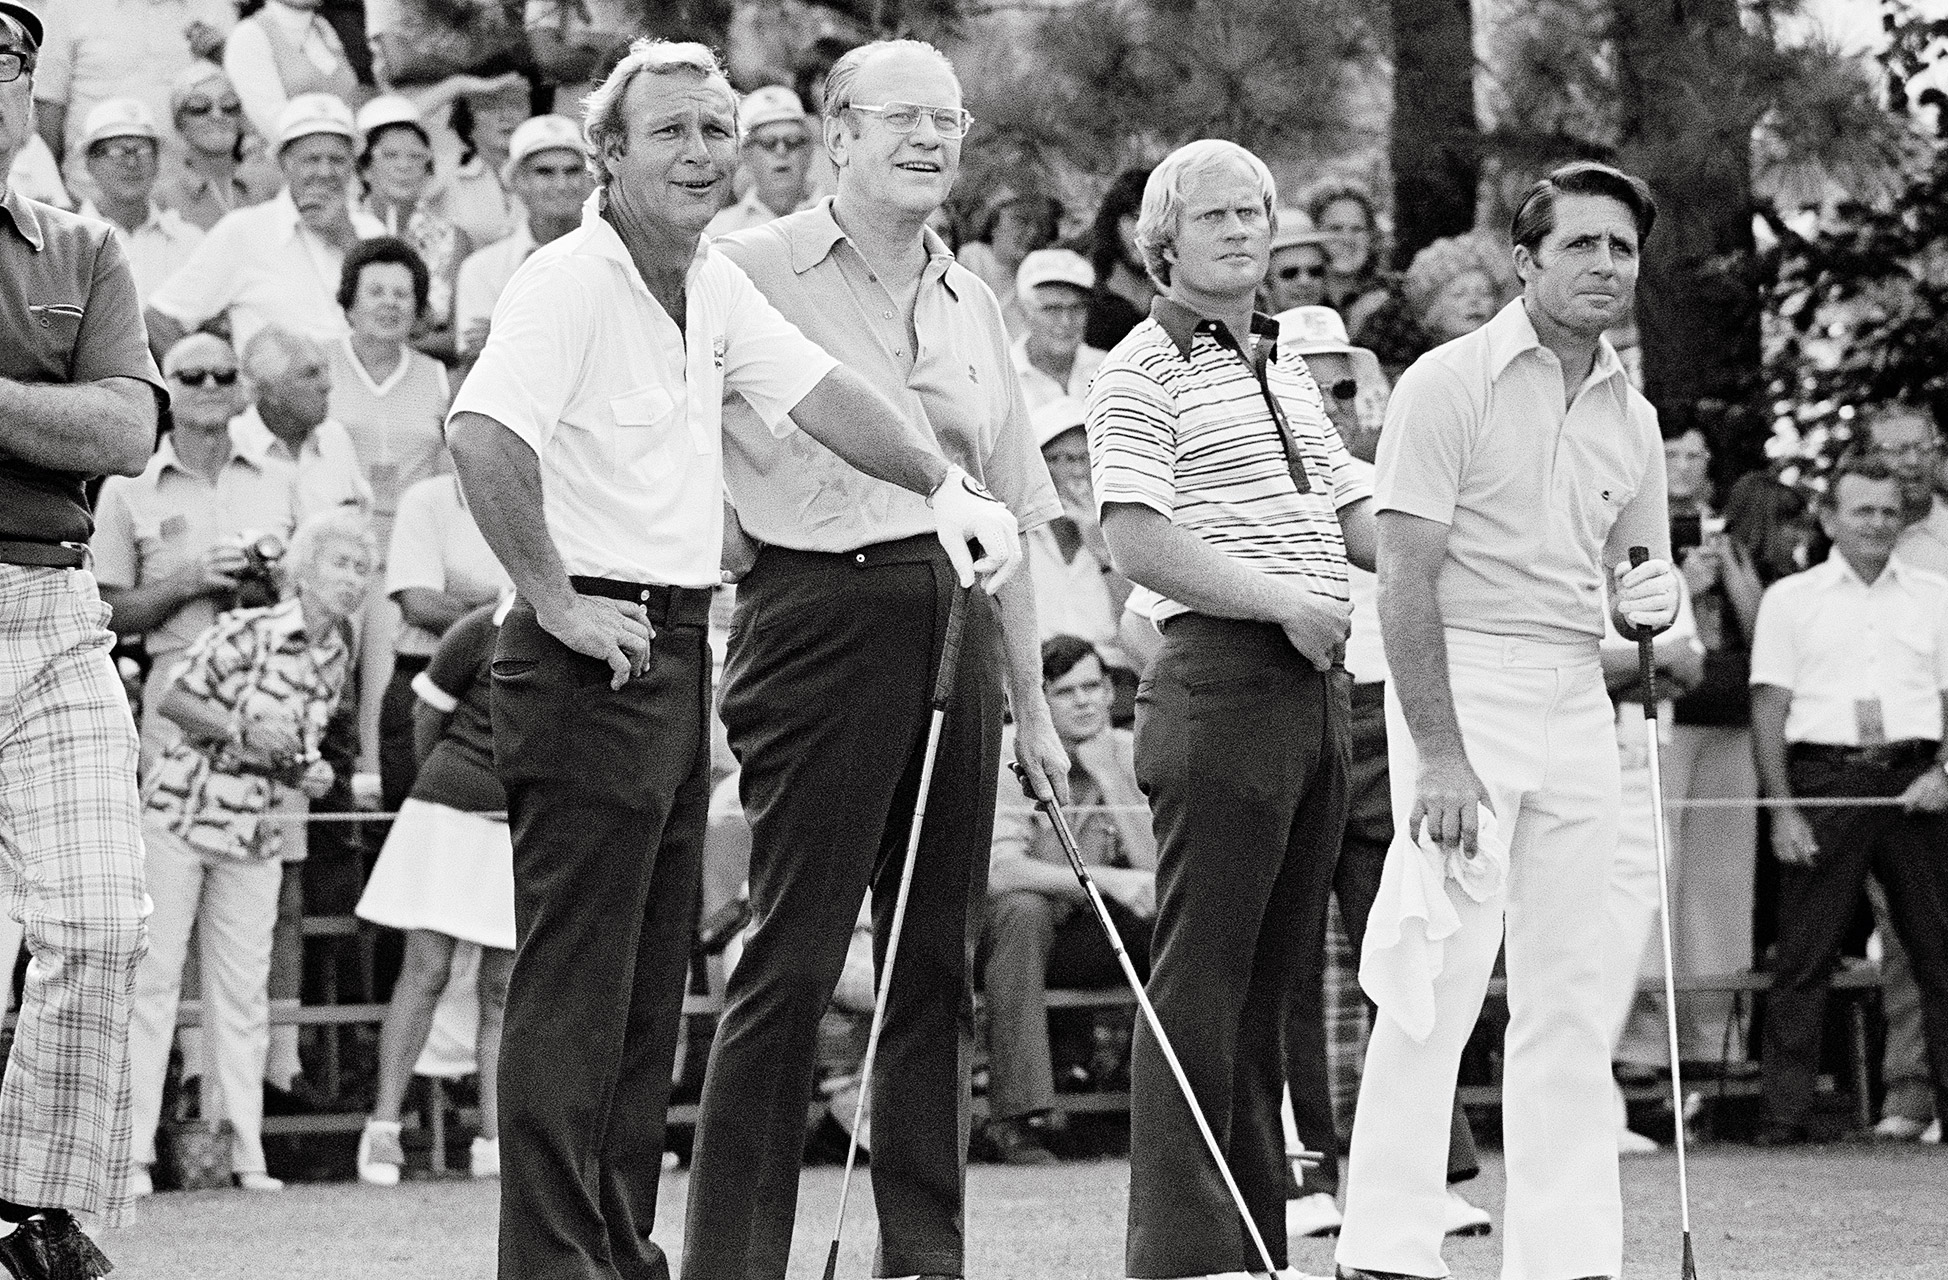 Arnold Palmer Pictures His Life In Photographs: Arnold Palmer Retrospective